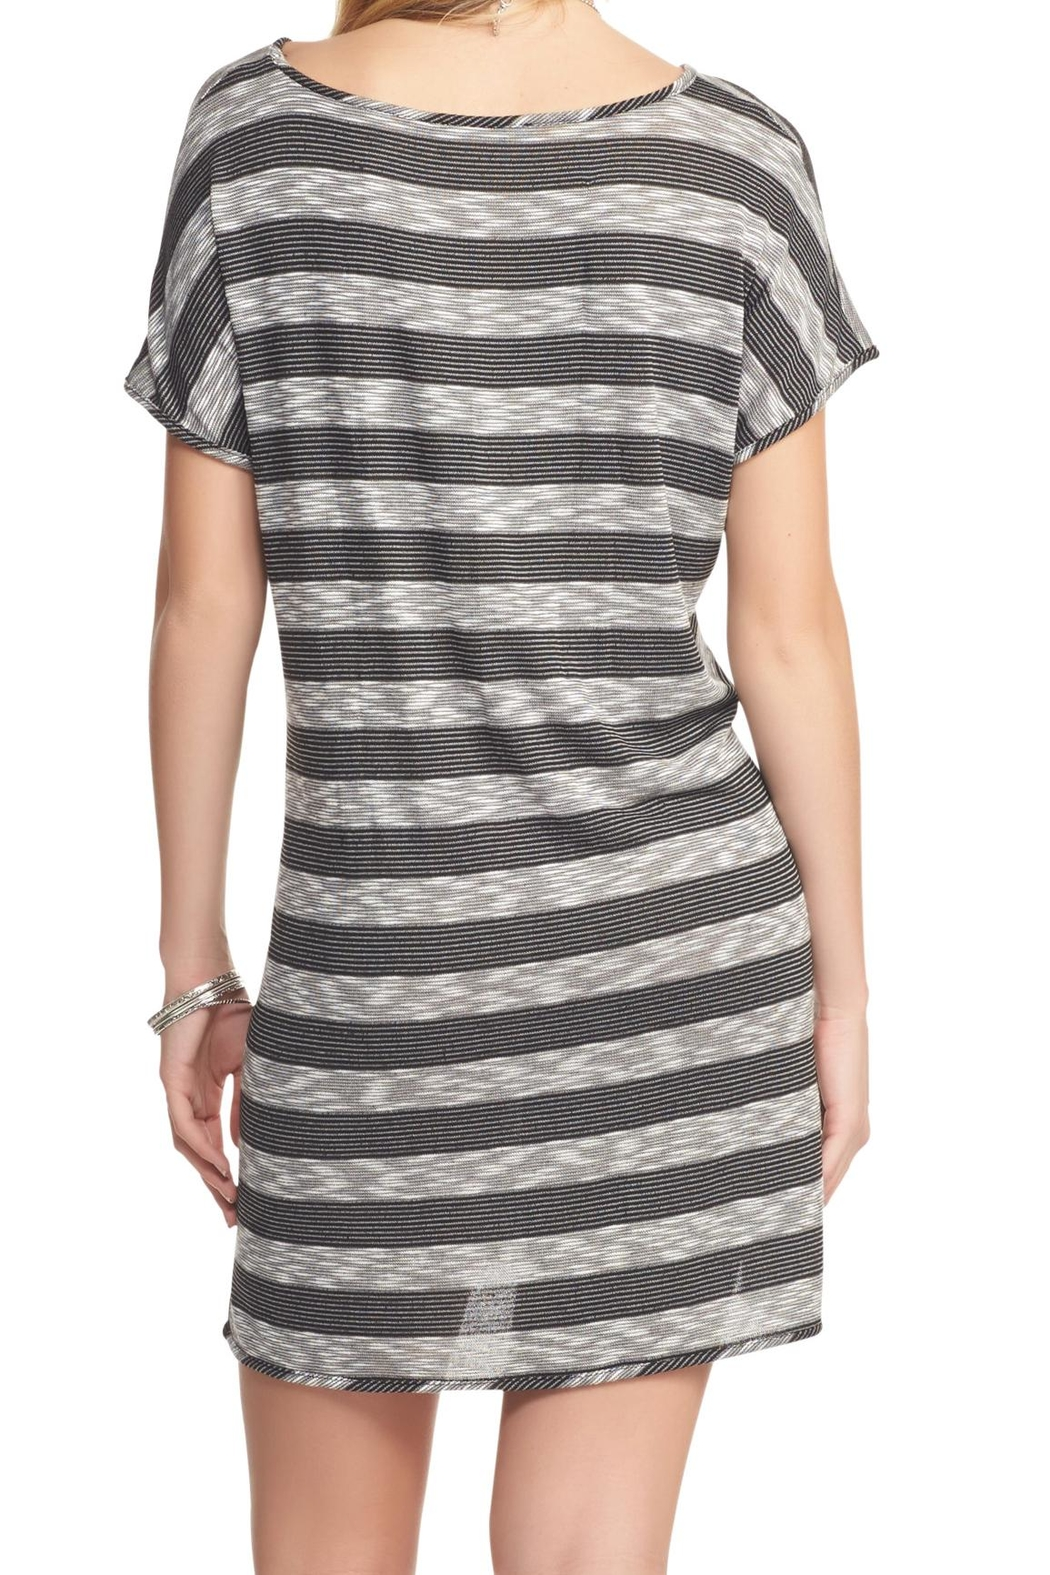 Tart Collections Stripe Dress - Front Full Image